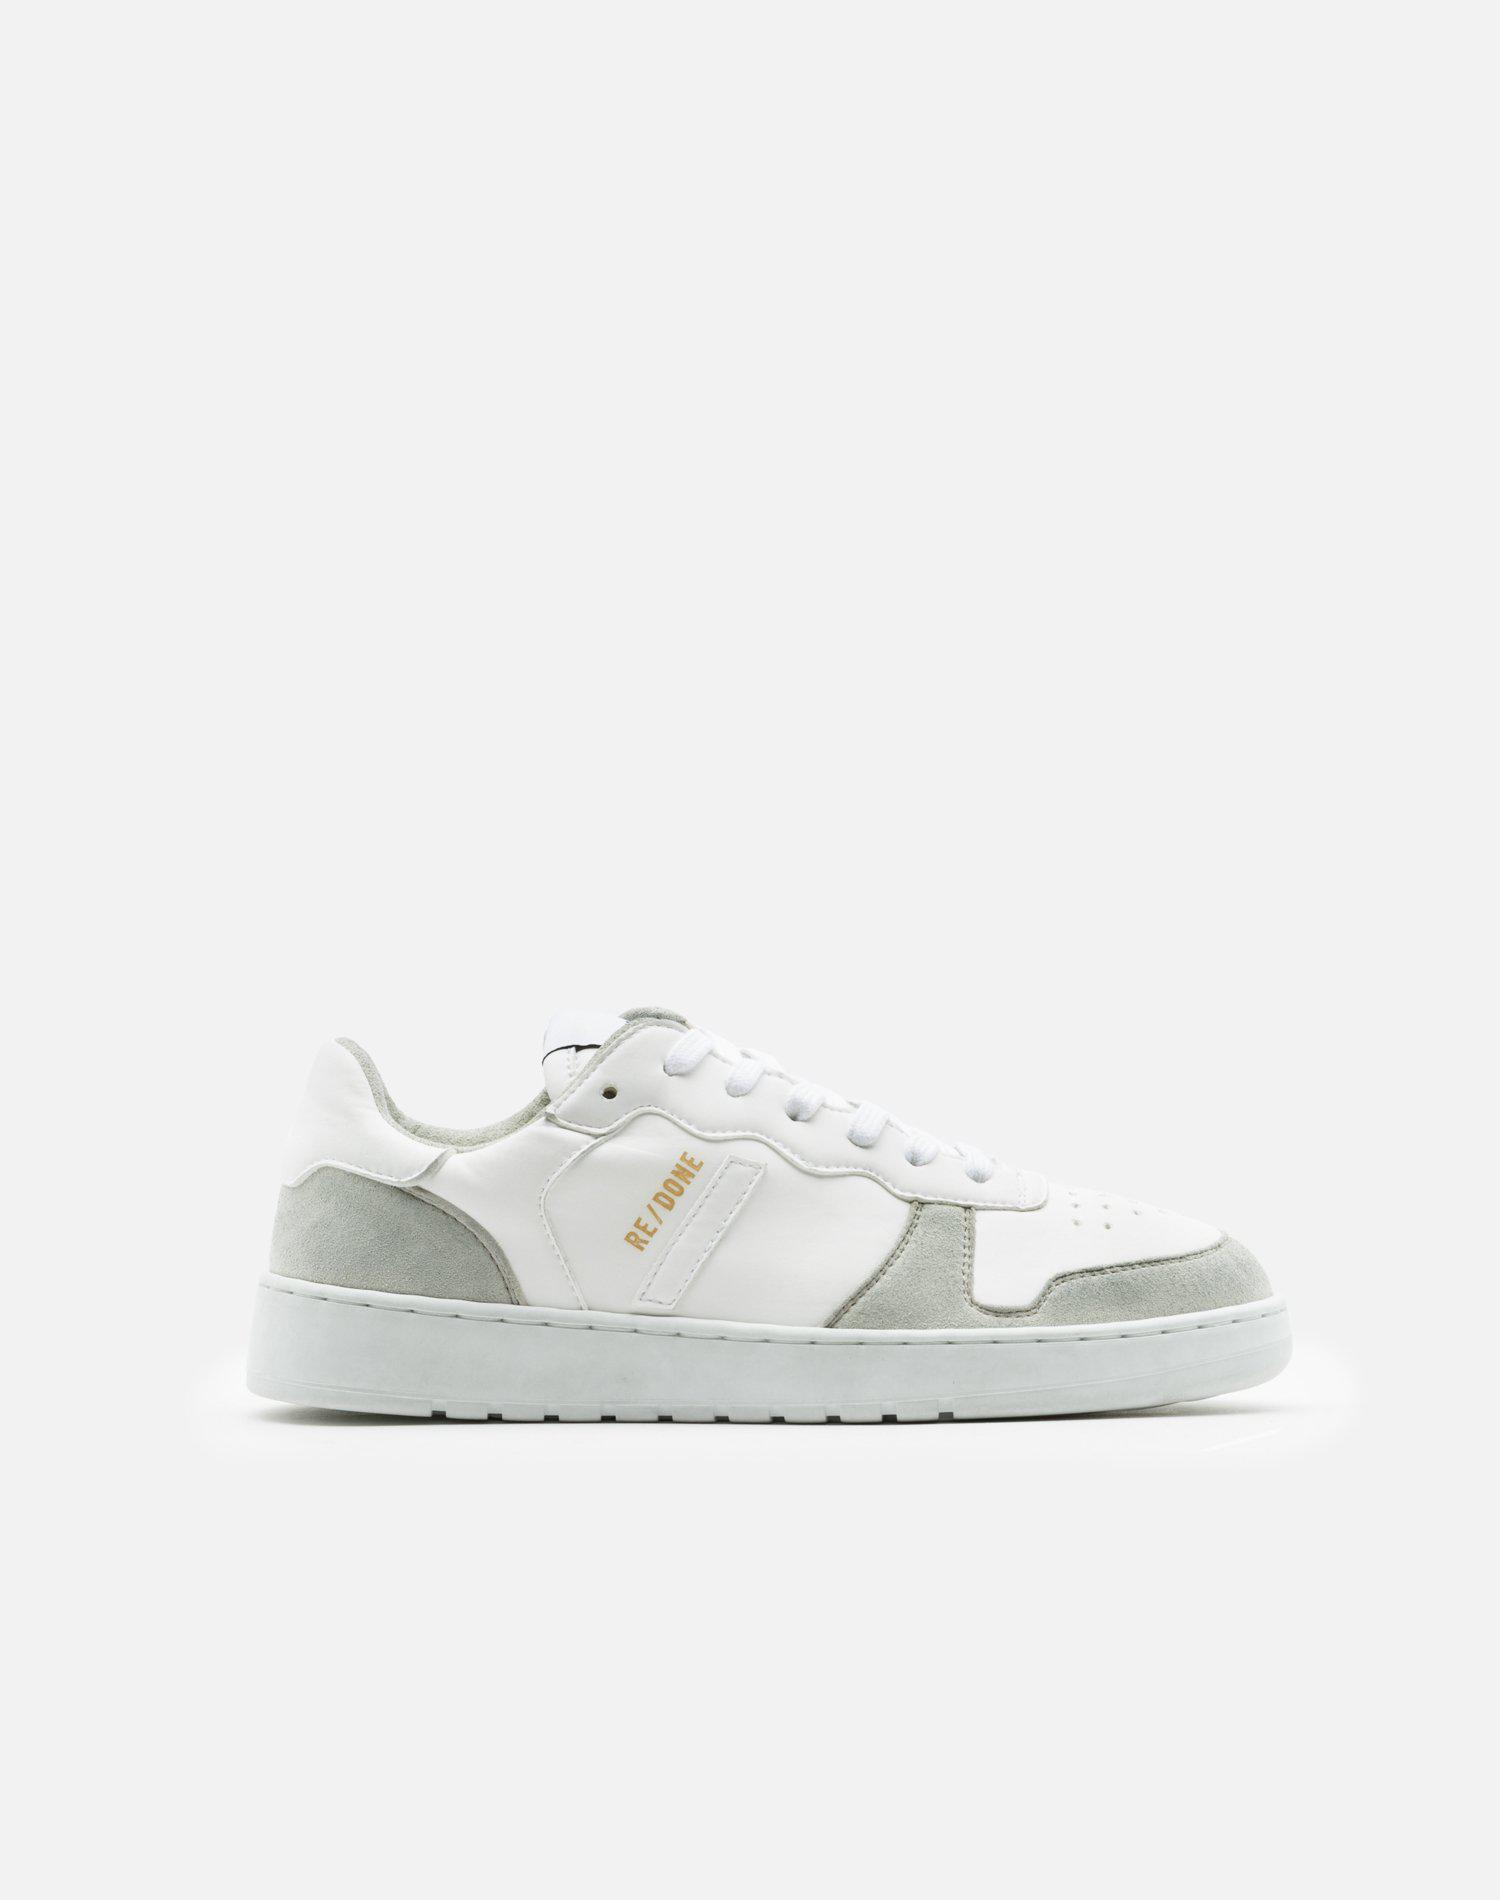 80s Sustainable Basketball Shoe - White and White